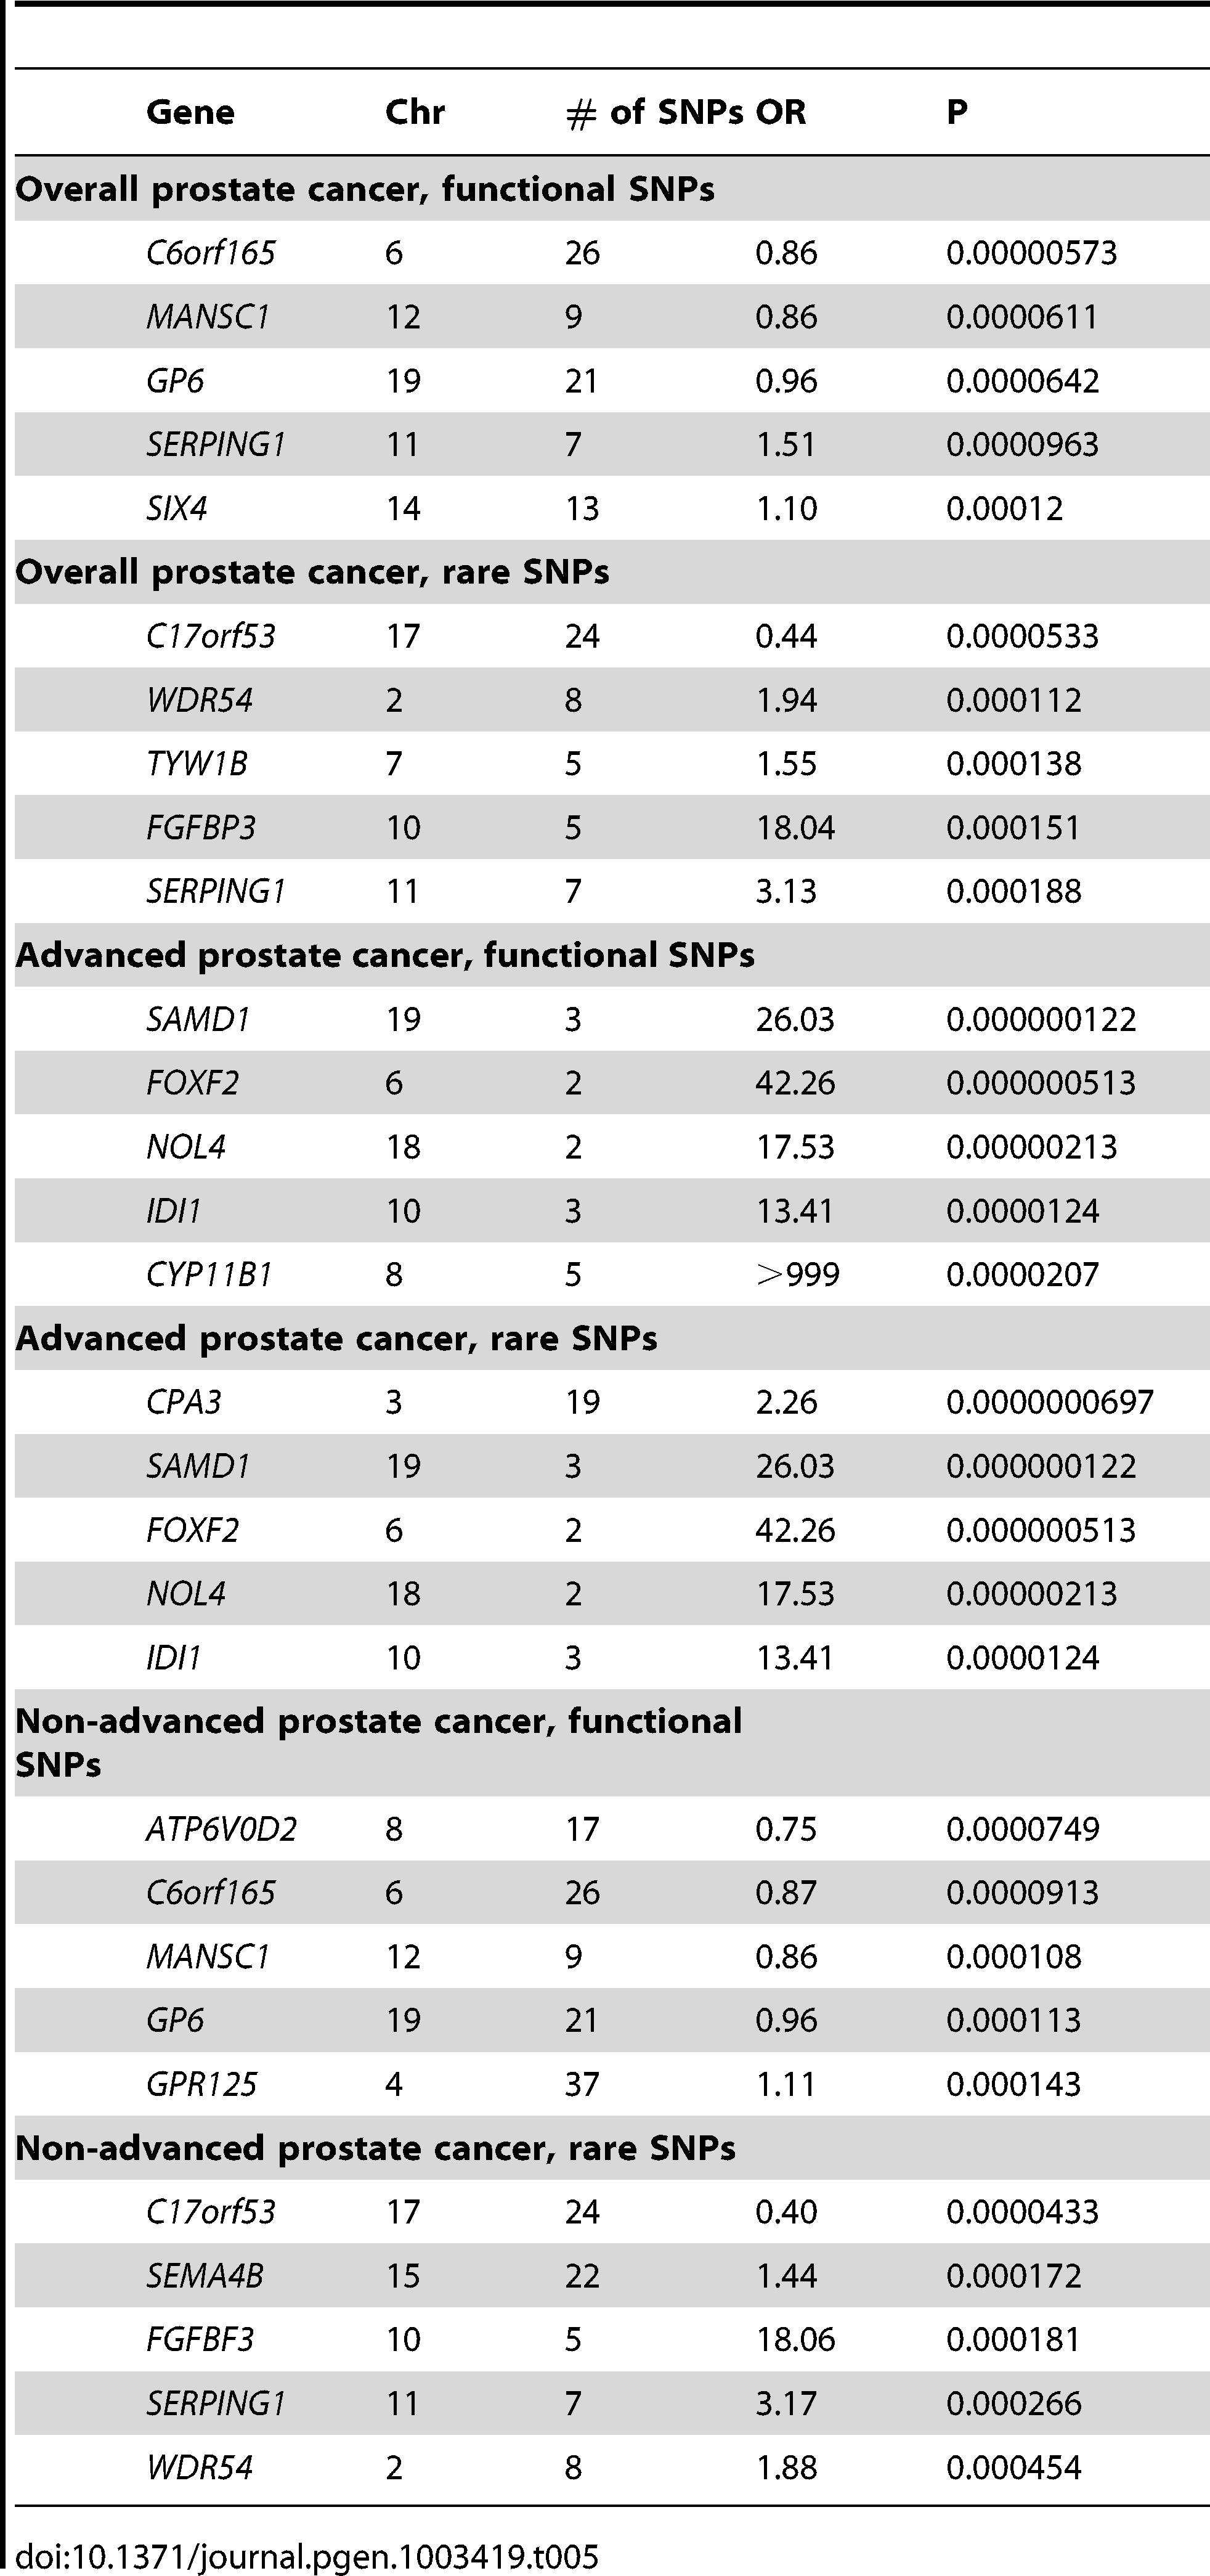 The Most Significant Associations of Gene Burden of Coding Variants with Prostate Cancer Risk.